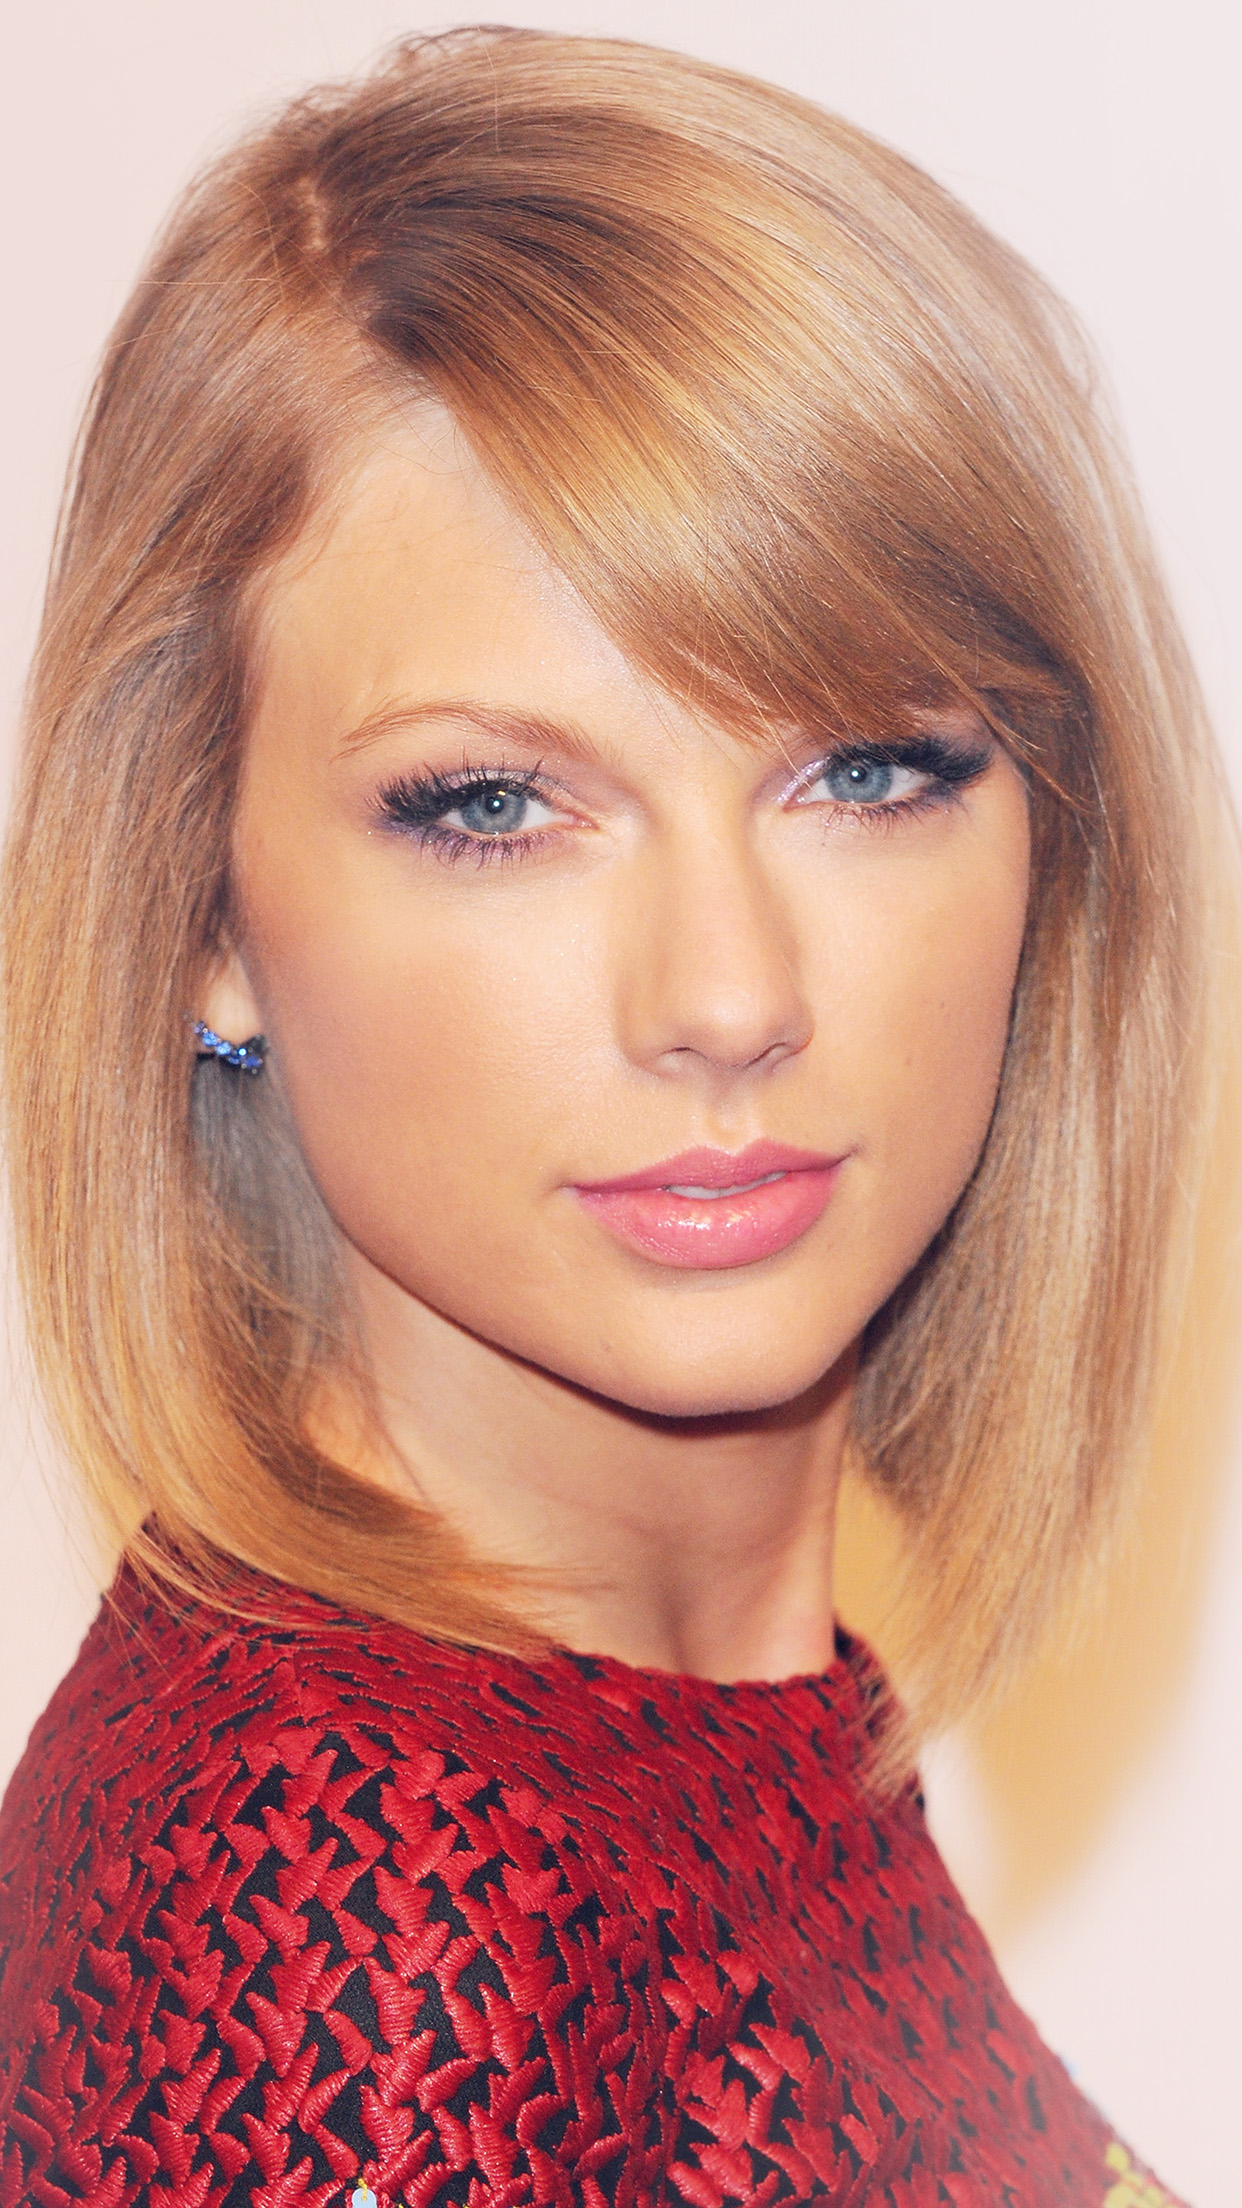 swift essays Born on december 13, 1989, in reading, pennsylvania, taylor swift was earning  renown as a country music singer by the age of 16 early hits.